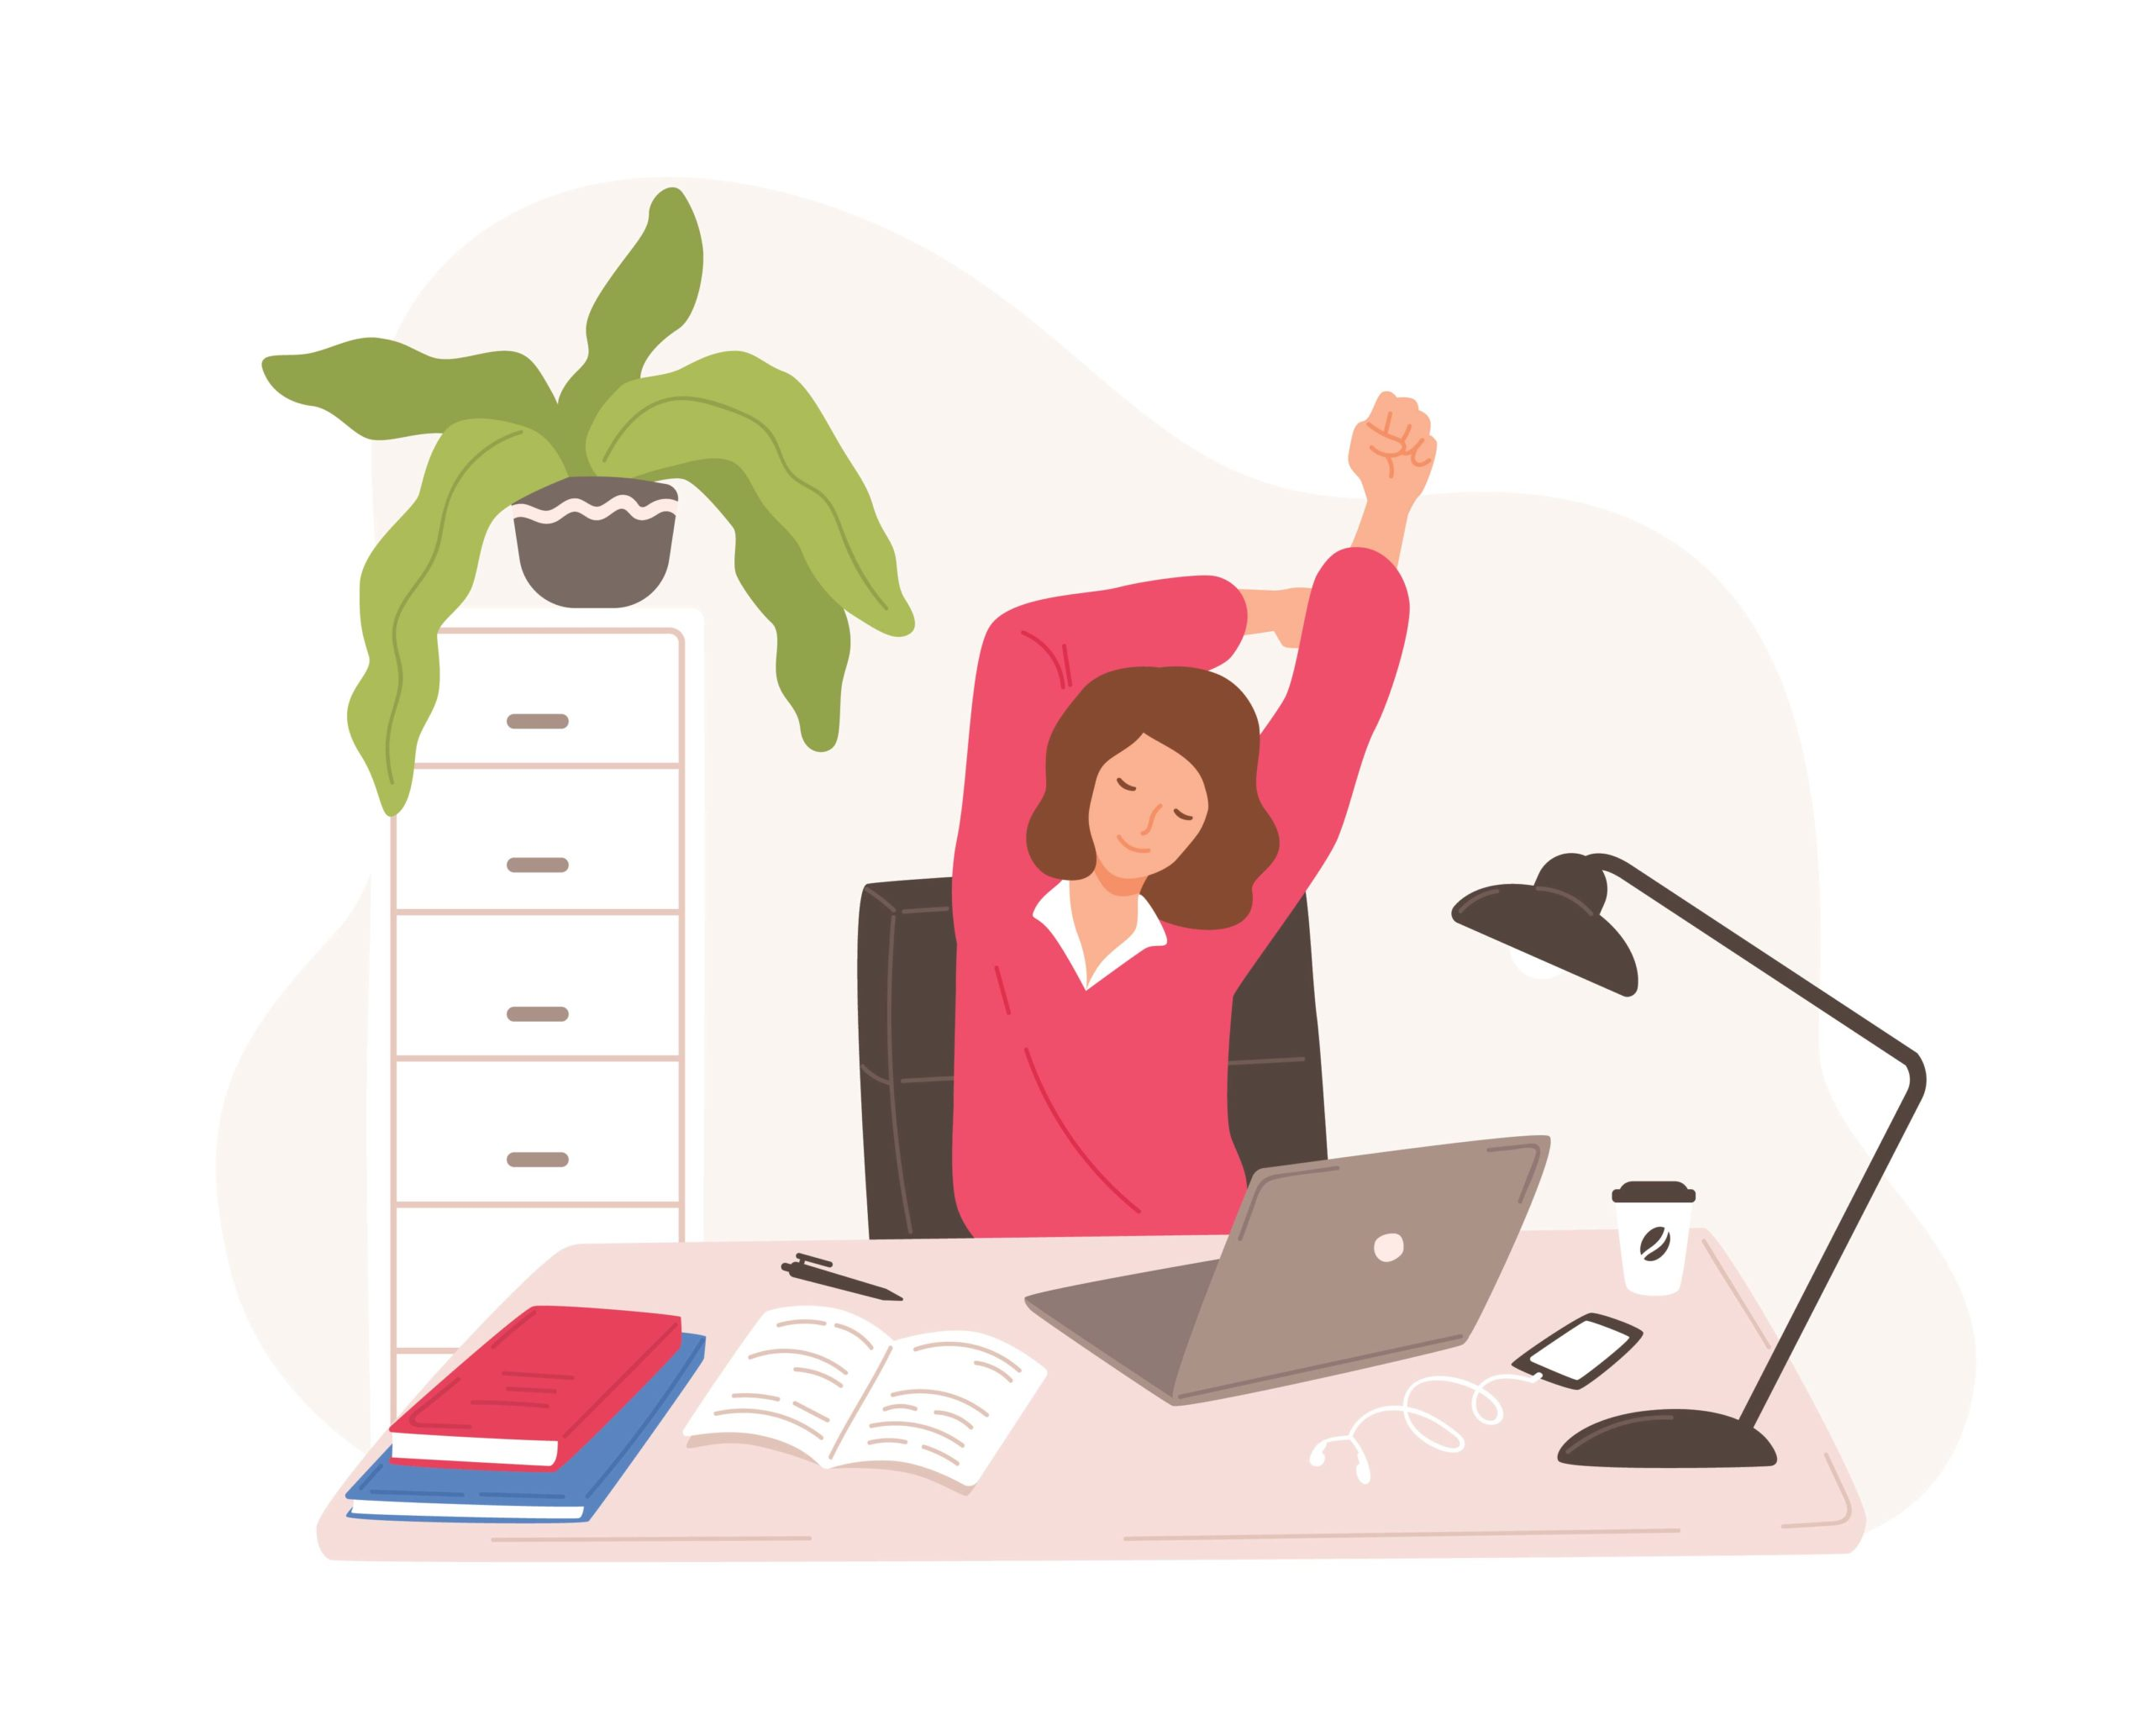 Get a Jump on Your Day. Exercises to Support an Ergonomic Home Office Workspace.